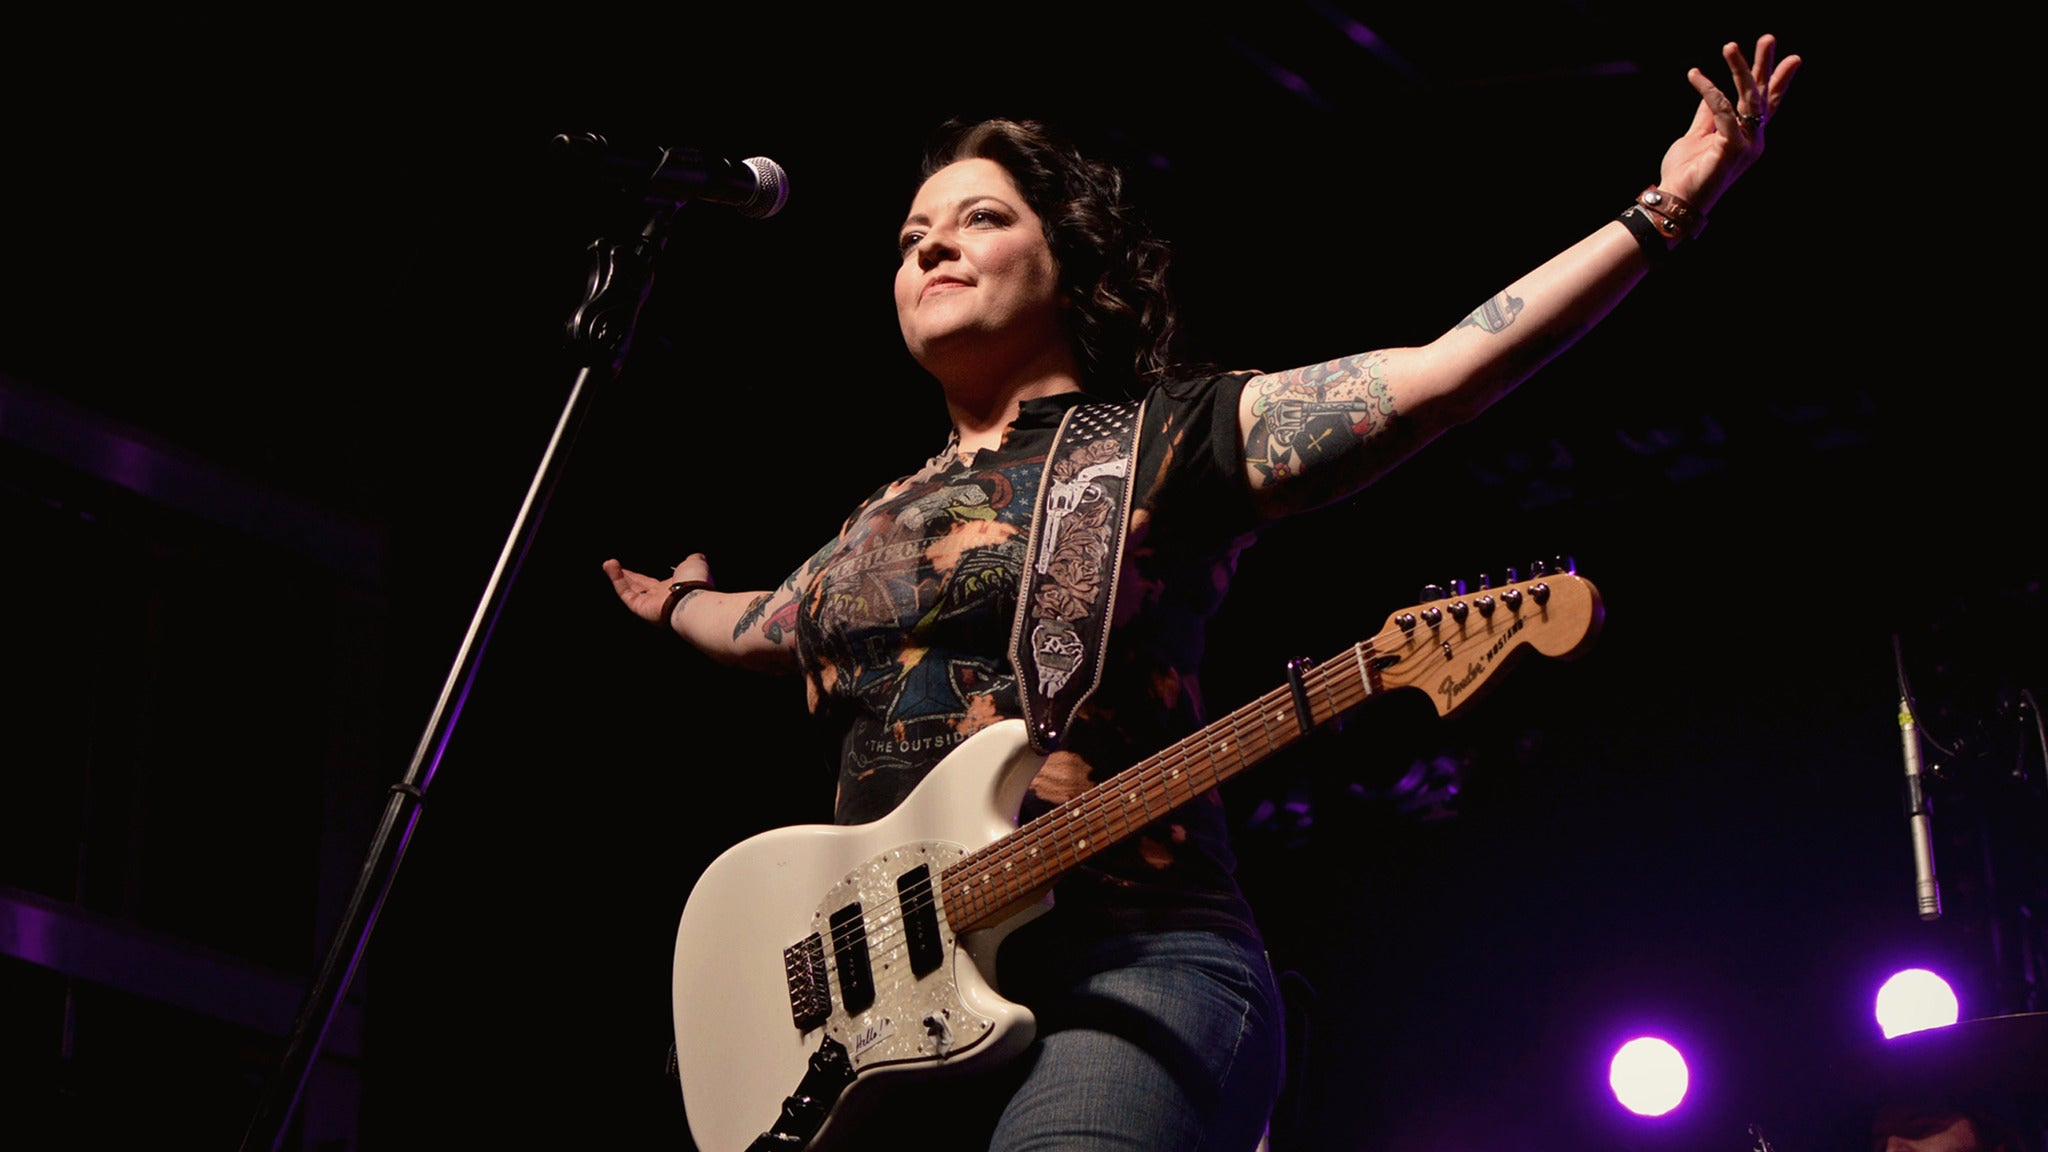 Ashley McBryde - One Night Standards Tour at Soul Kitchen